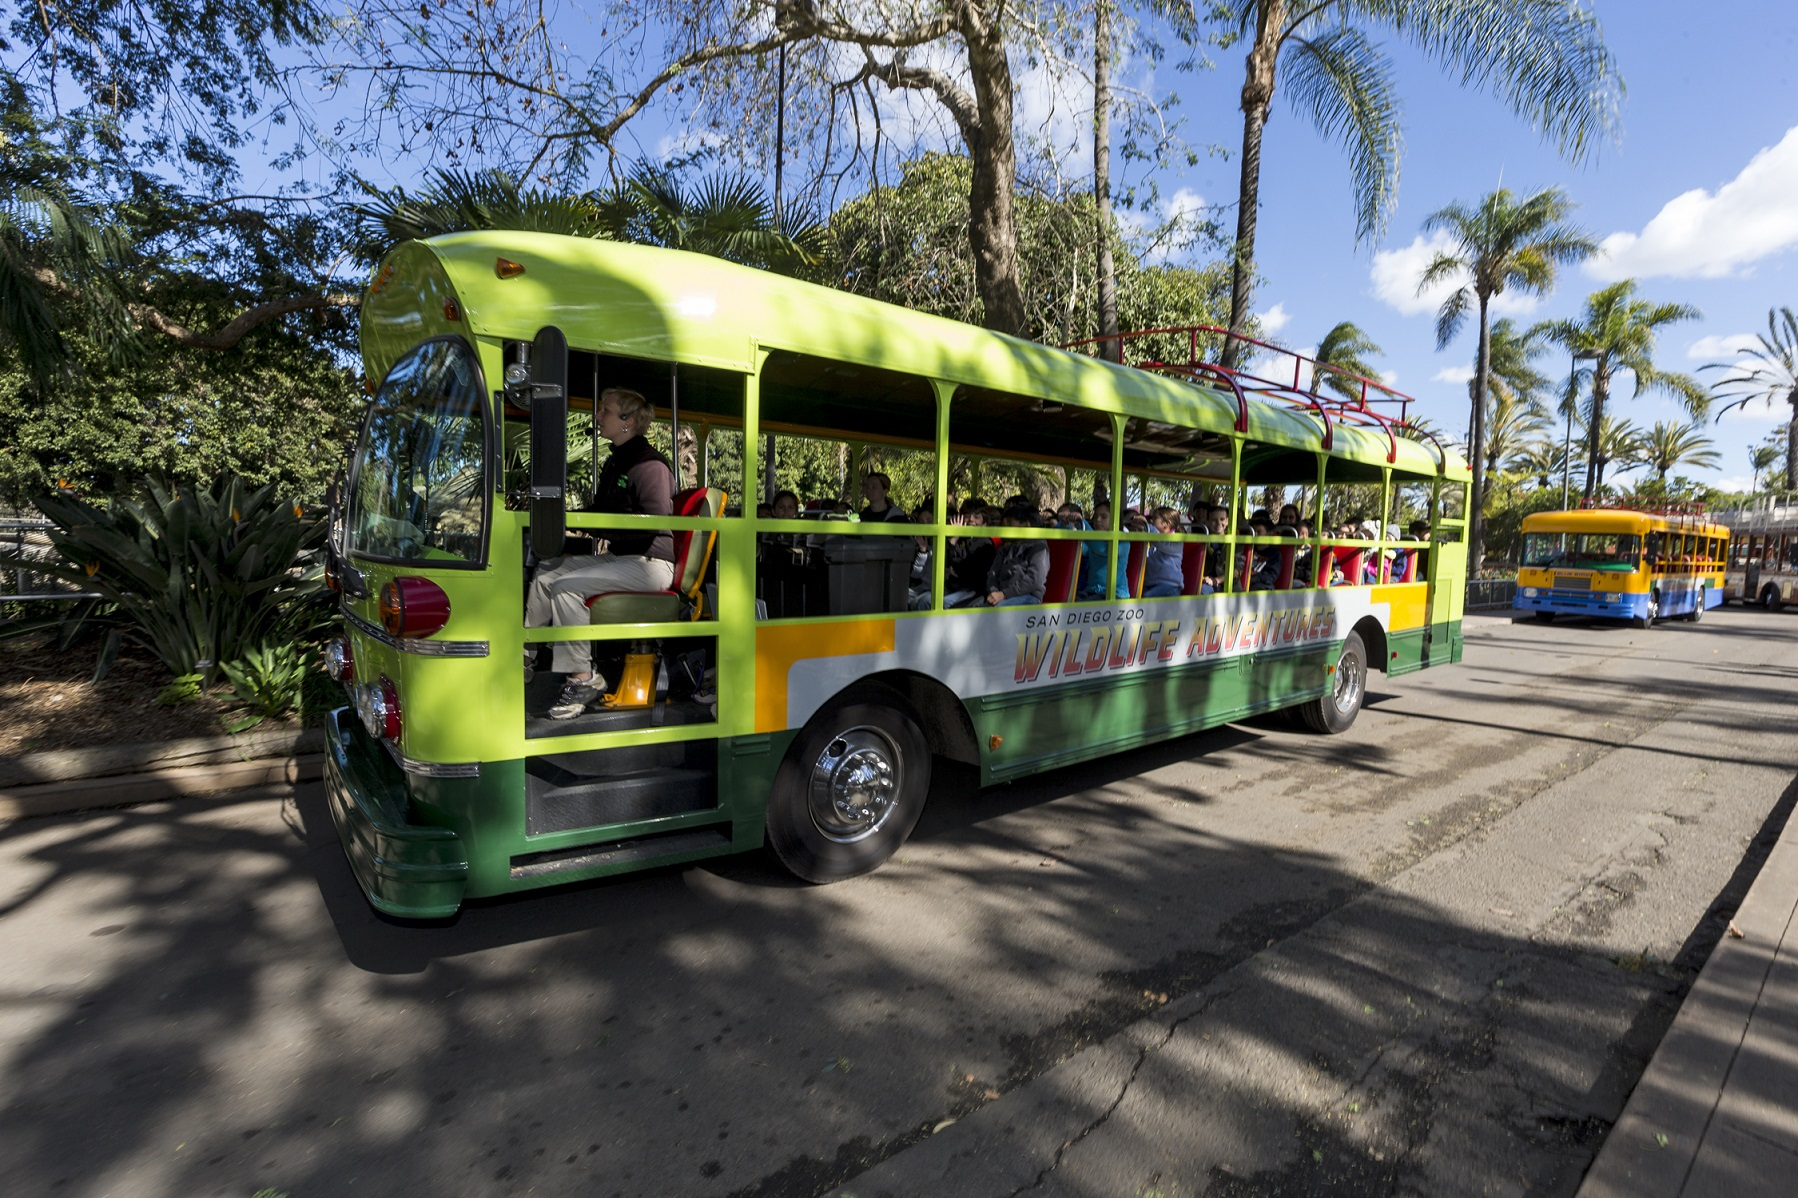 zoo Education bus